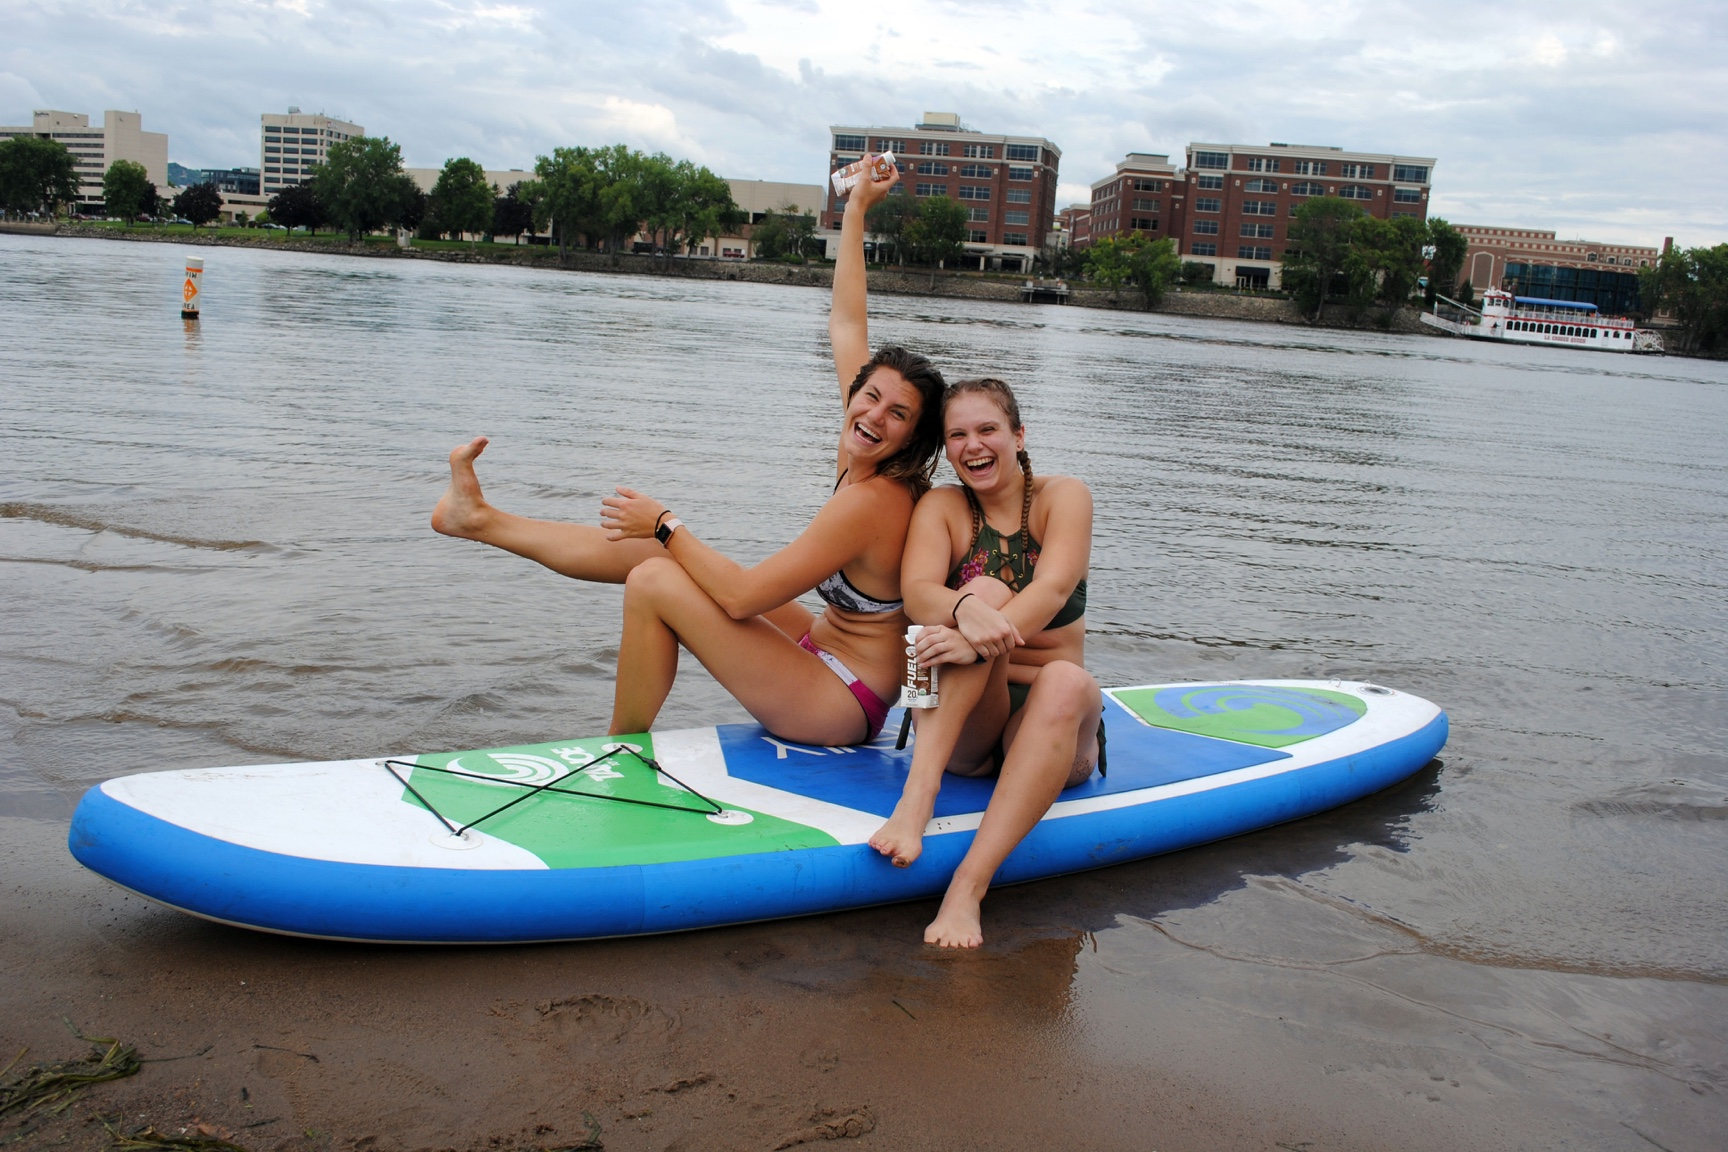 The author and a friend laugh and strike a funny pose while holding Organic Fuel and sitting on a paddle board on a river.